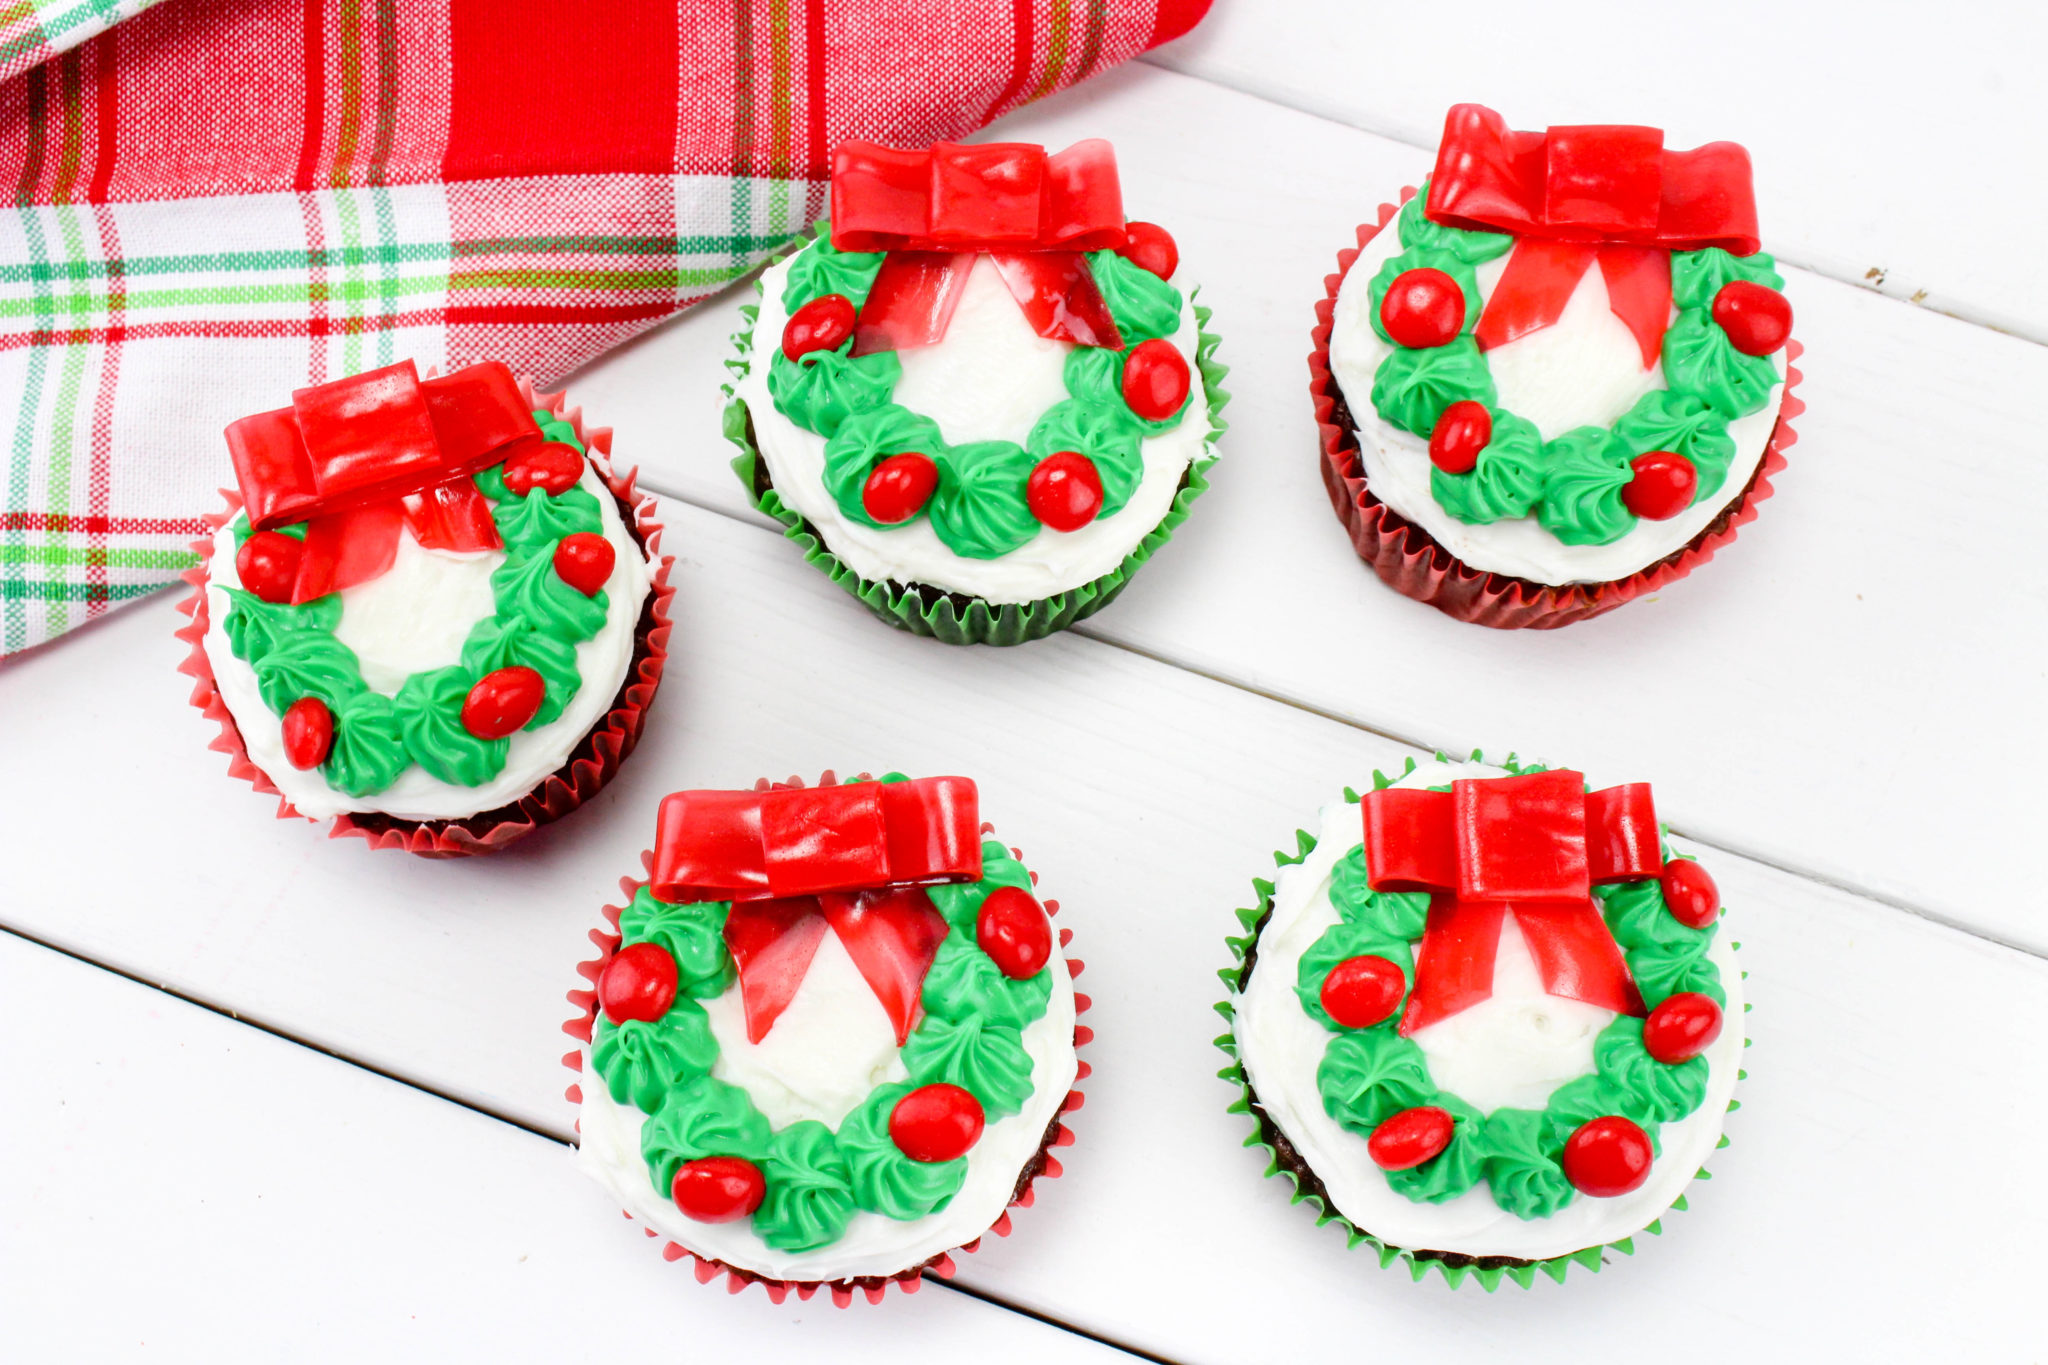 If you need a festive treat for a holiday party or to send into your kids classroom this year, these Christmas Wreath Cupcakes are what you are looking for.